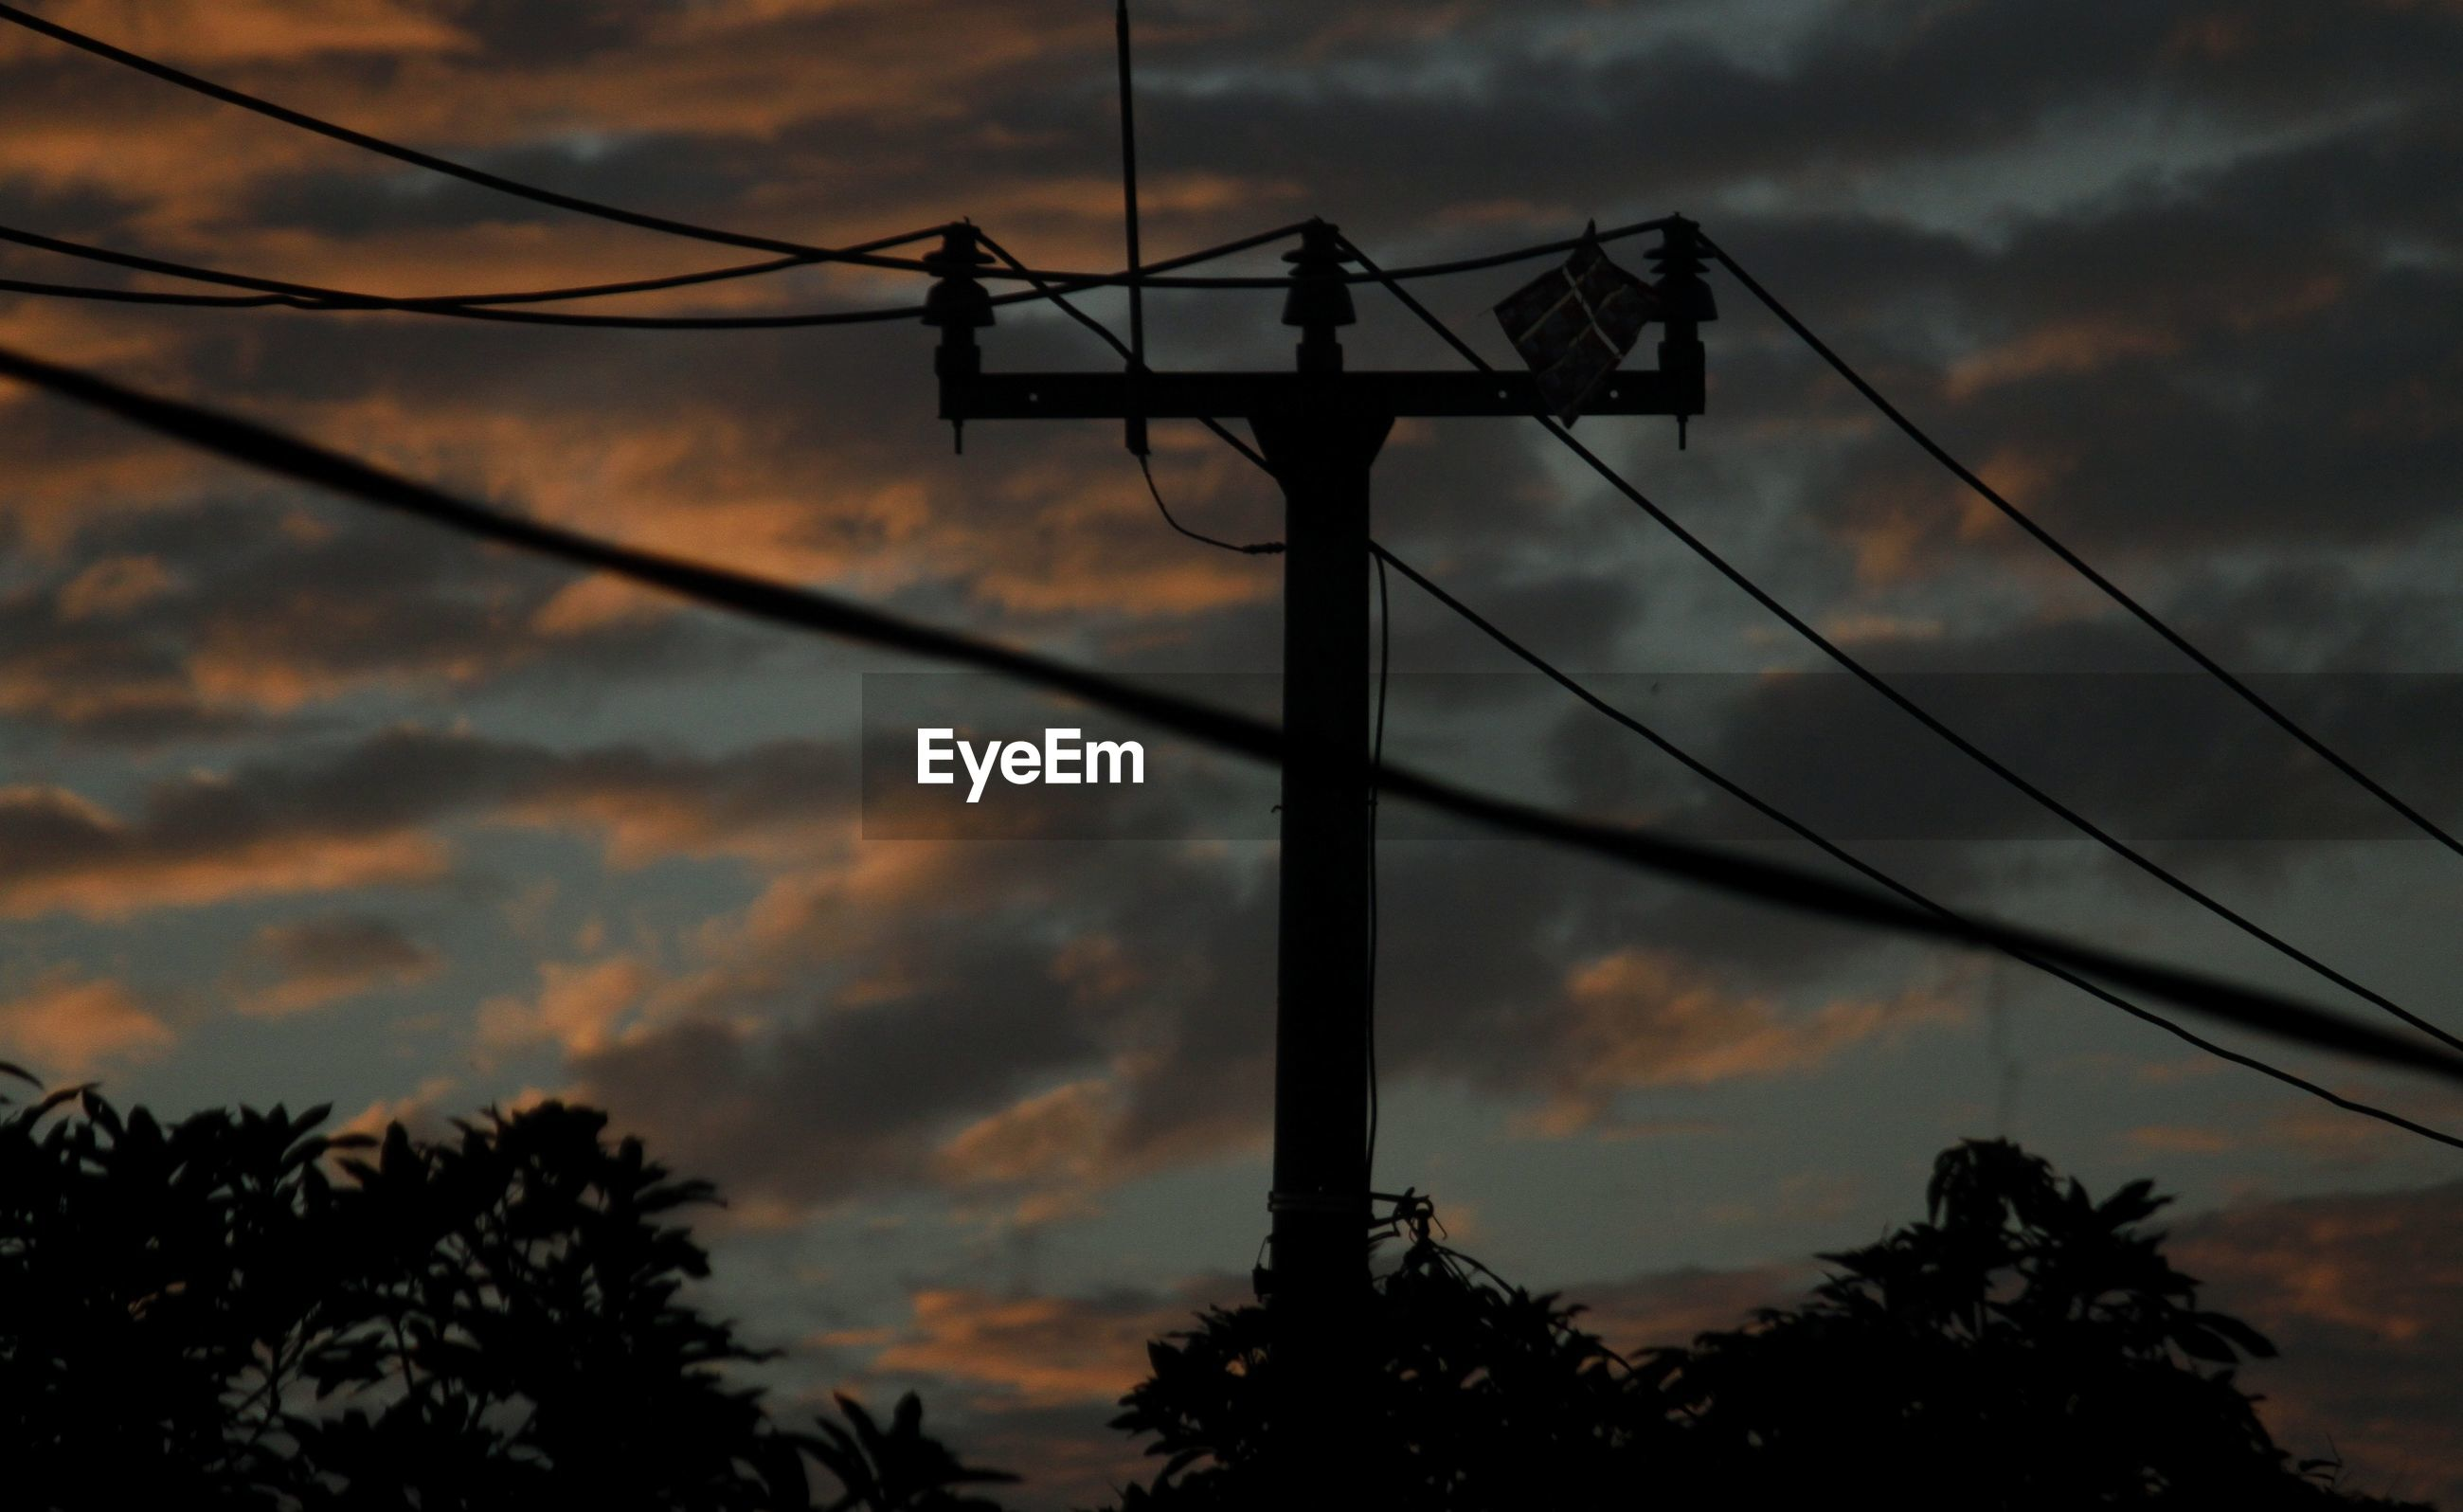 Low angle view of silhouette electric tower against sky at sunset